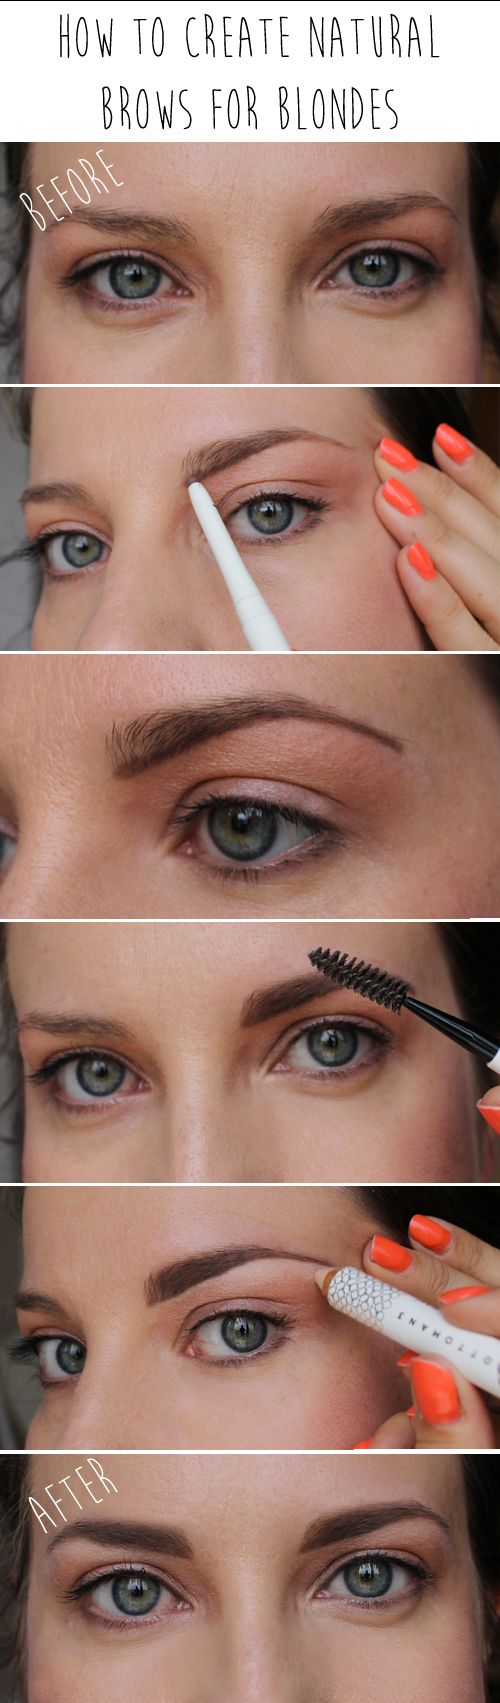 How to create natural brows for blondes